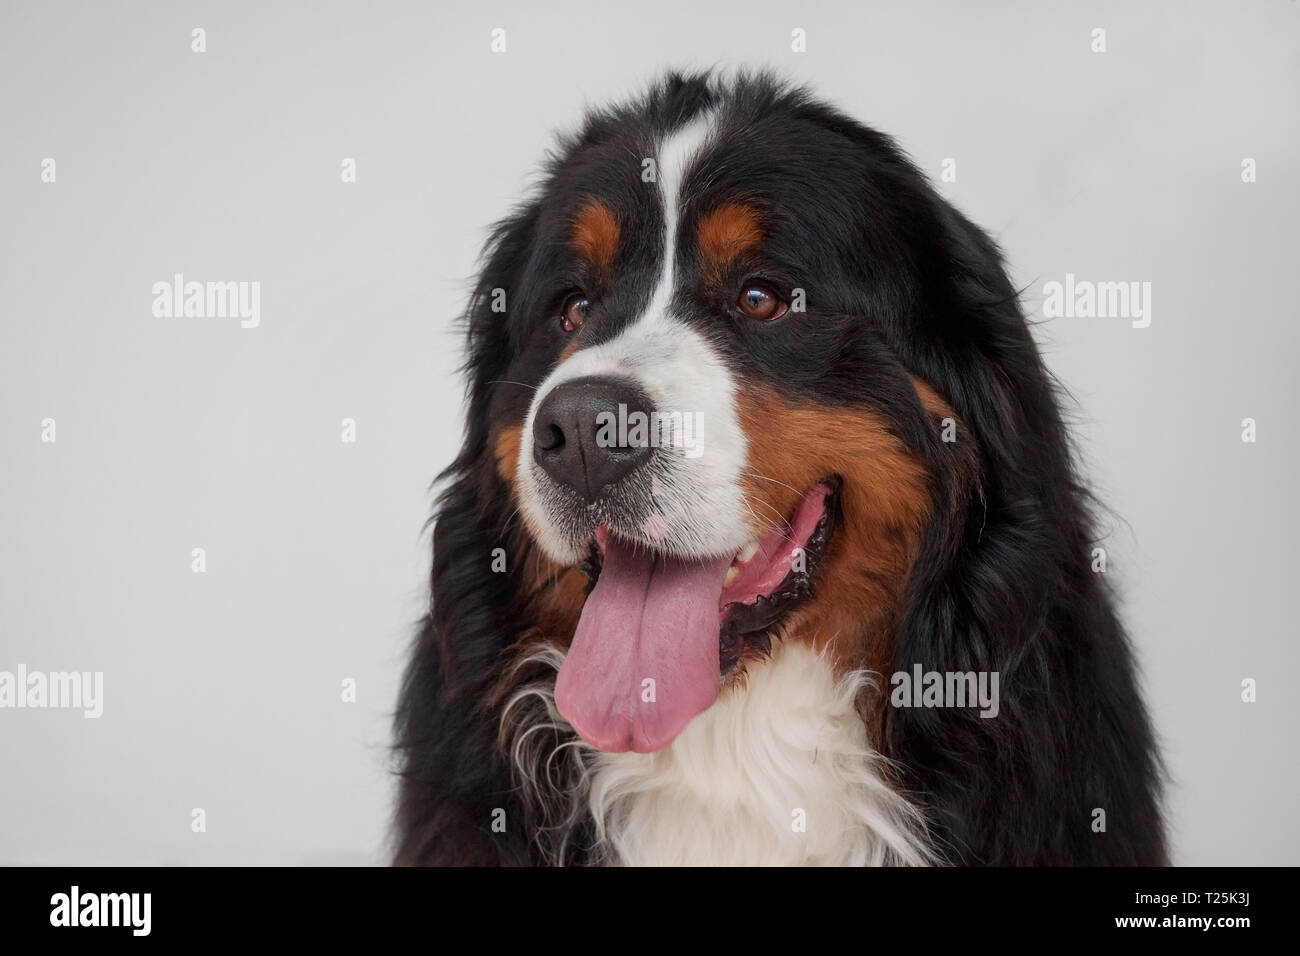 Cute Bernese Mountain Dog Puppy Isolated On A Gray Background Close Up Berner Sennenhund Or Bernese Cattle Dog Pet Animals Stock Photo Alamy